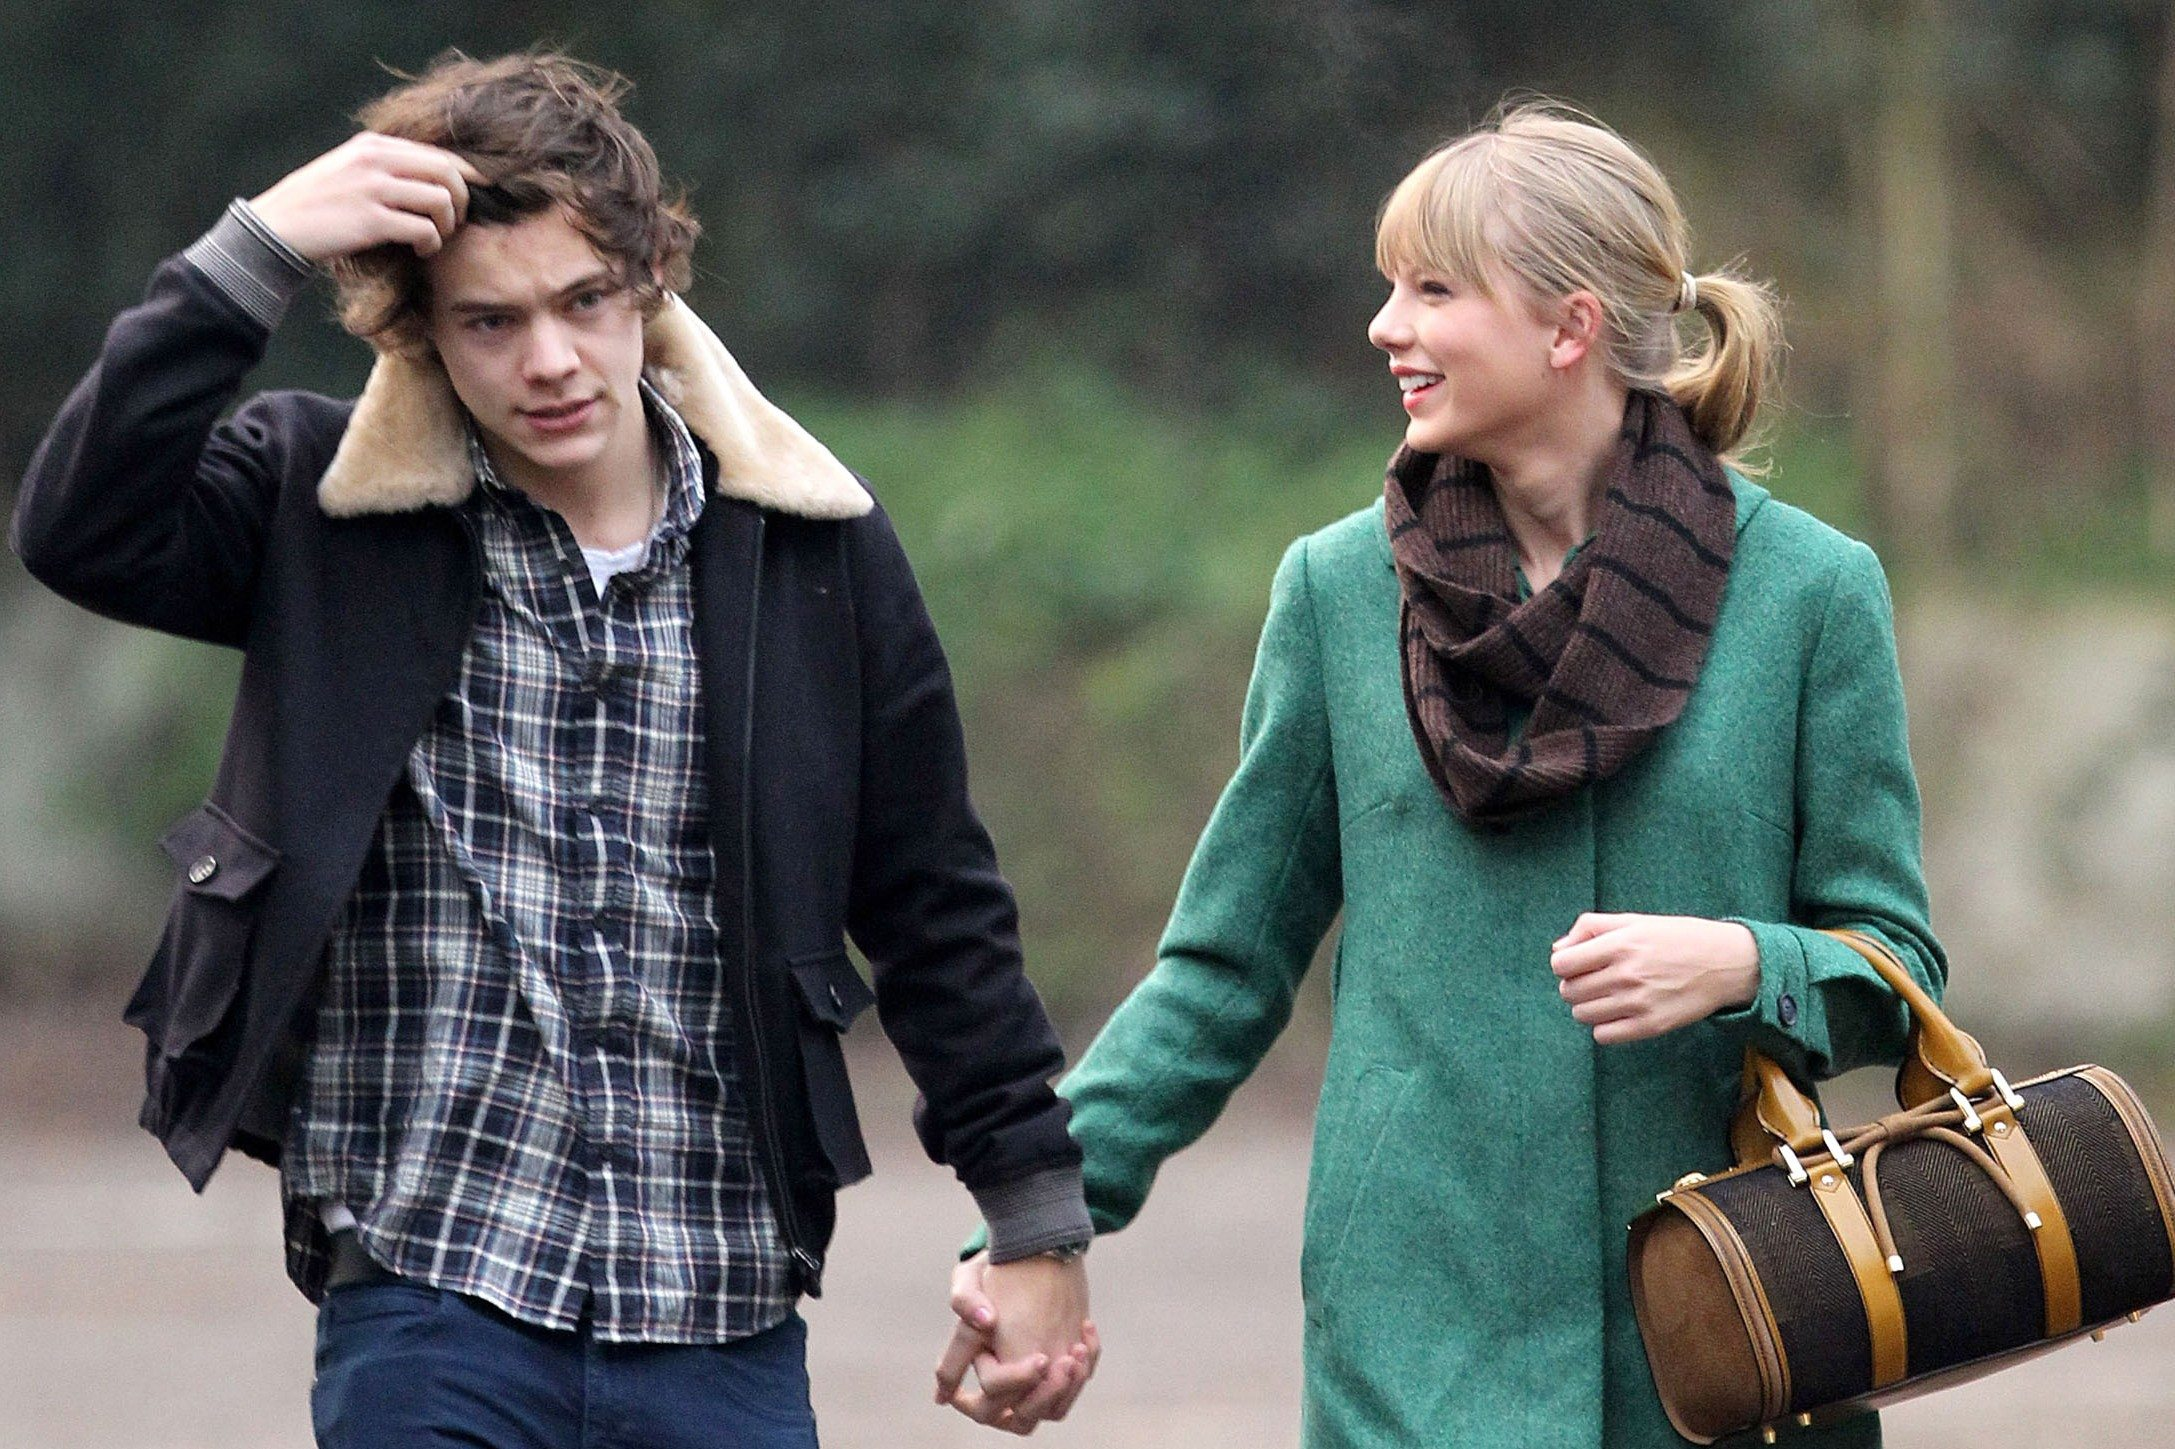 Are Harry Styles and Taylor Swift dating